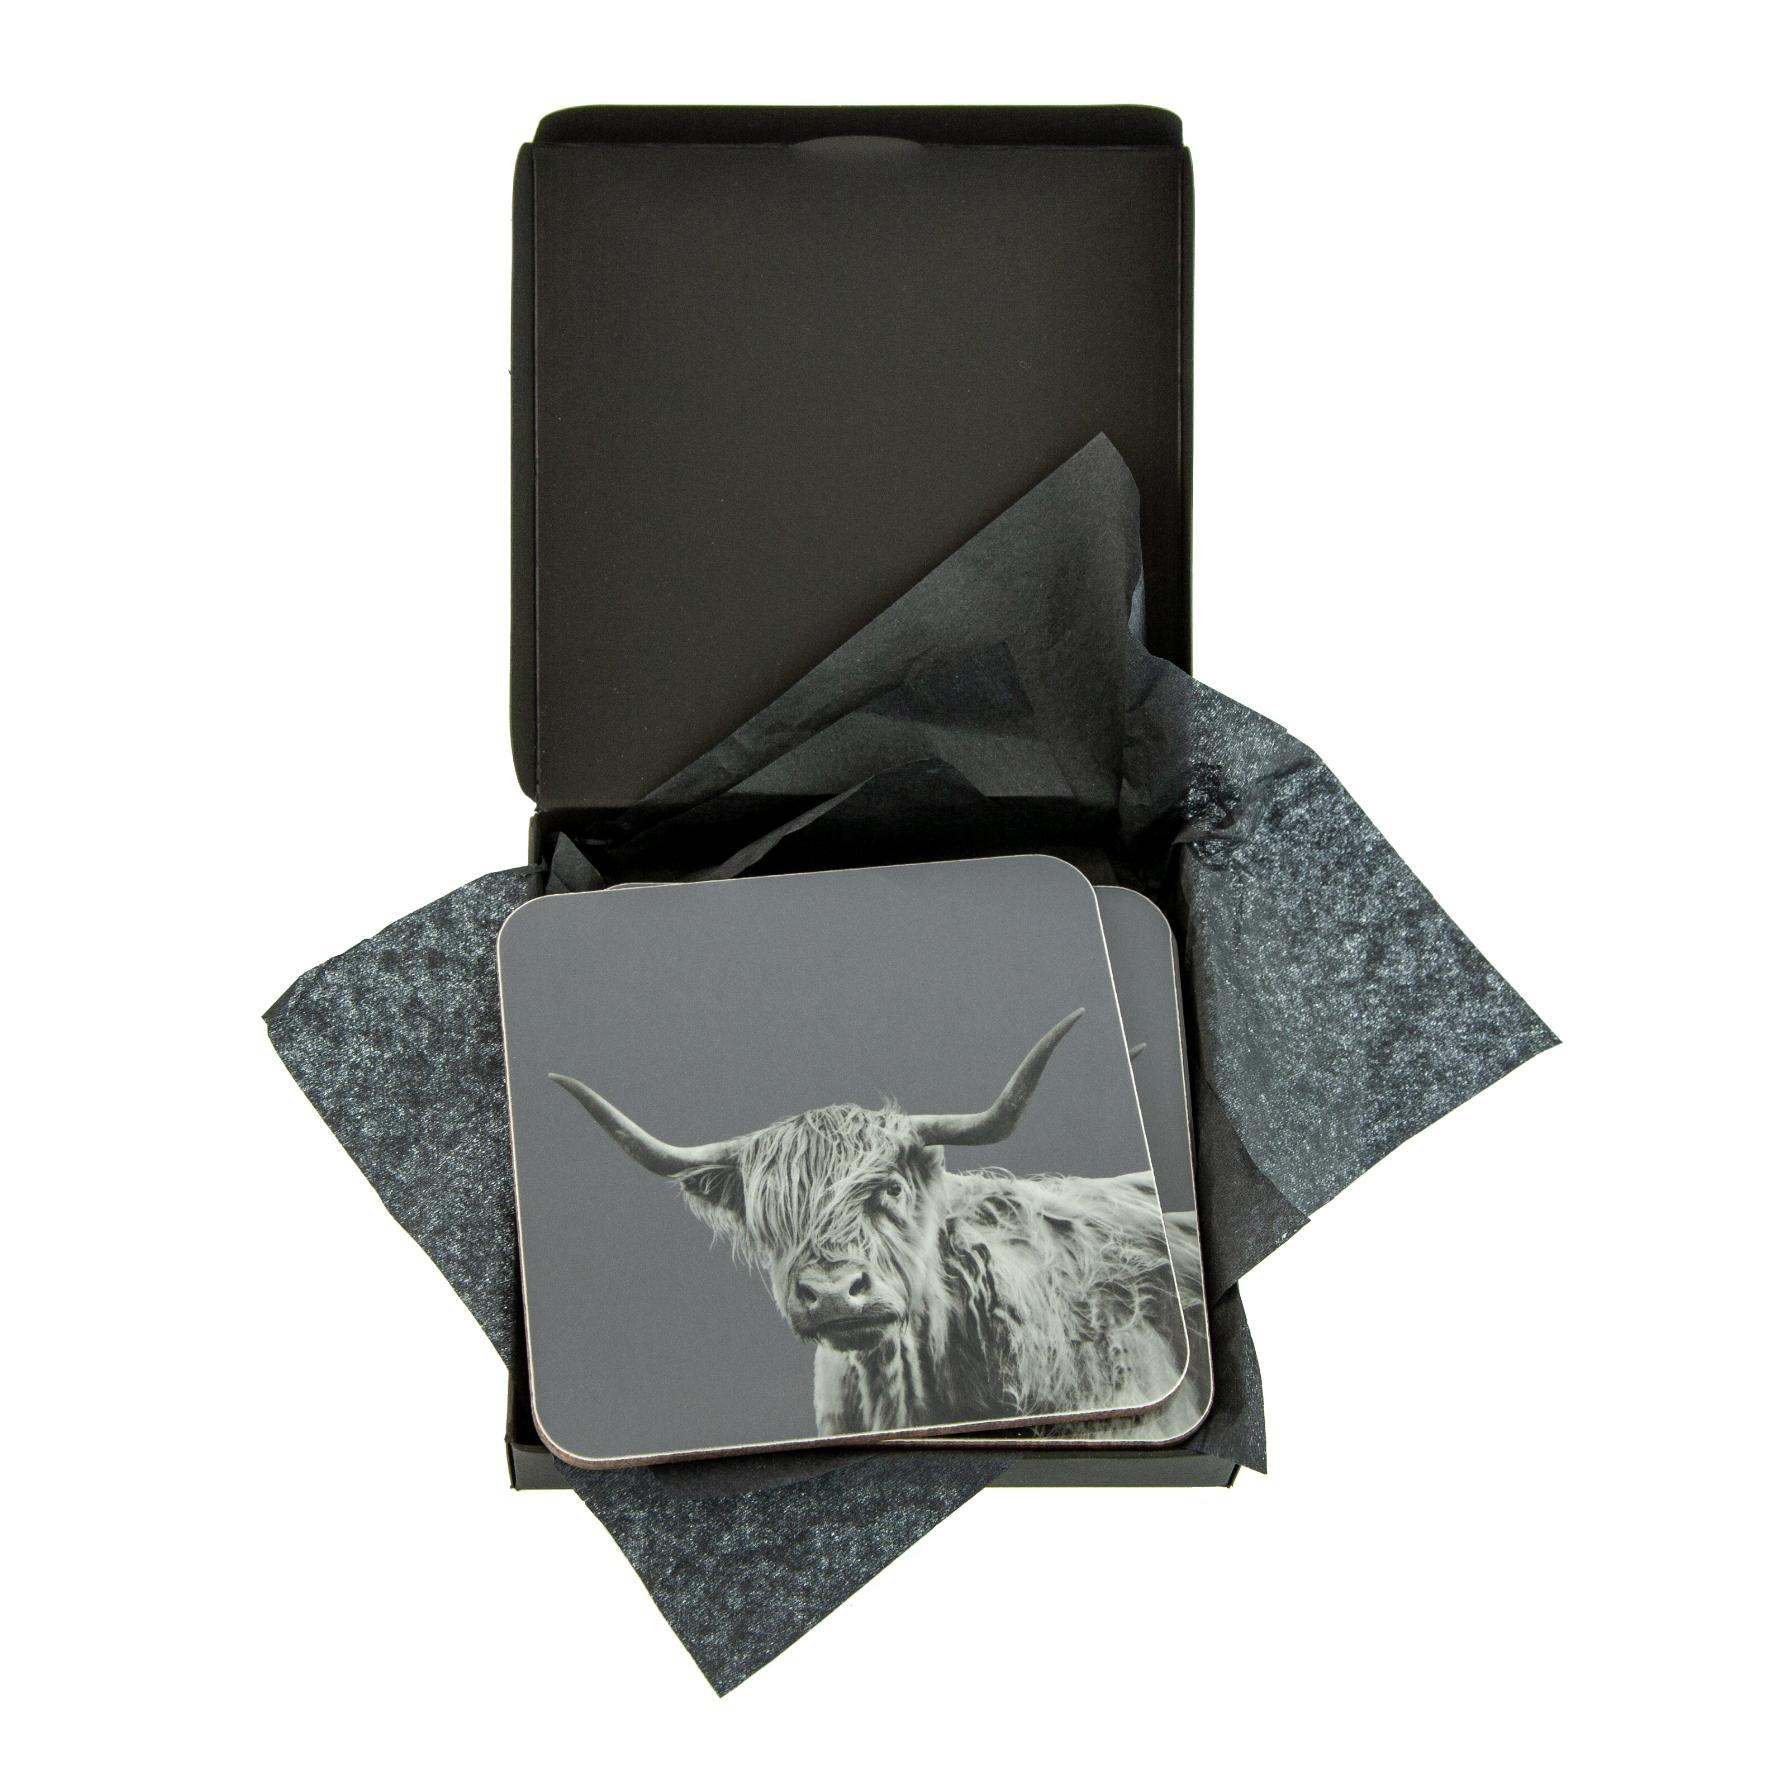 Shaggy Highland Cow Coaster on Charcoal